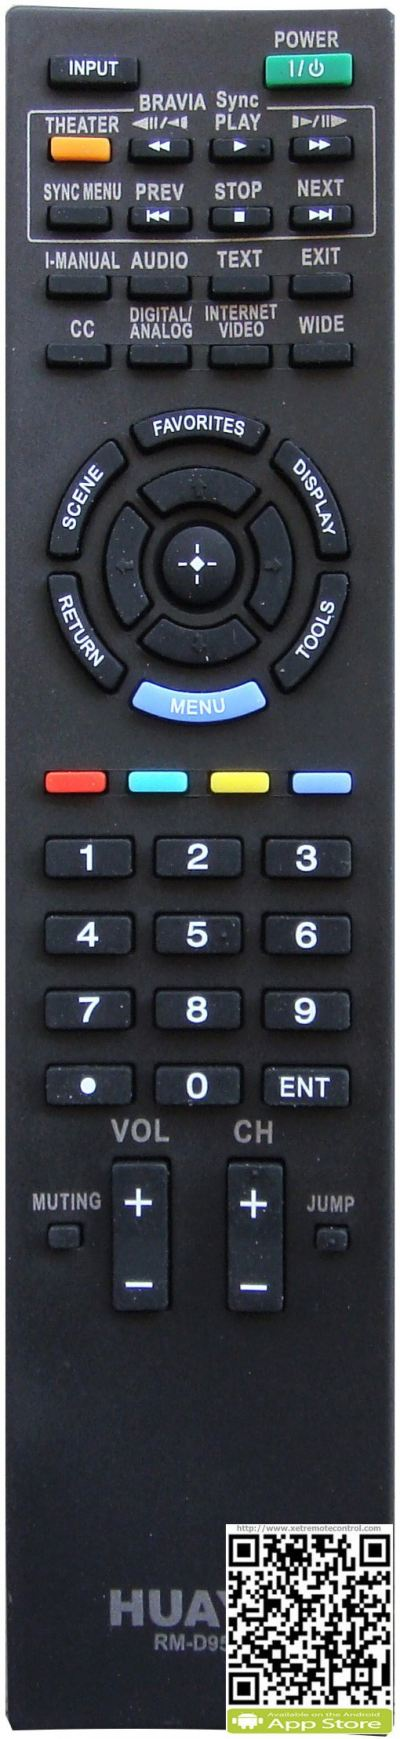 RM-D998 SONY LCD/LED TV REMOTE CONTROL